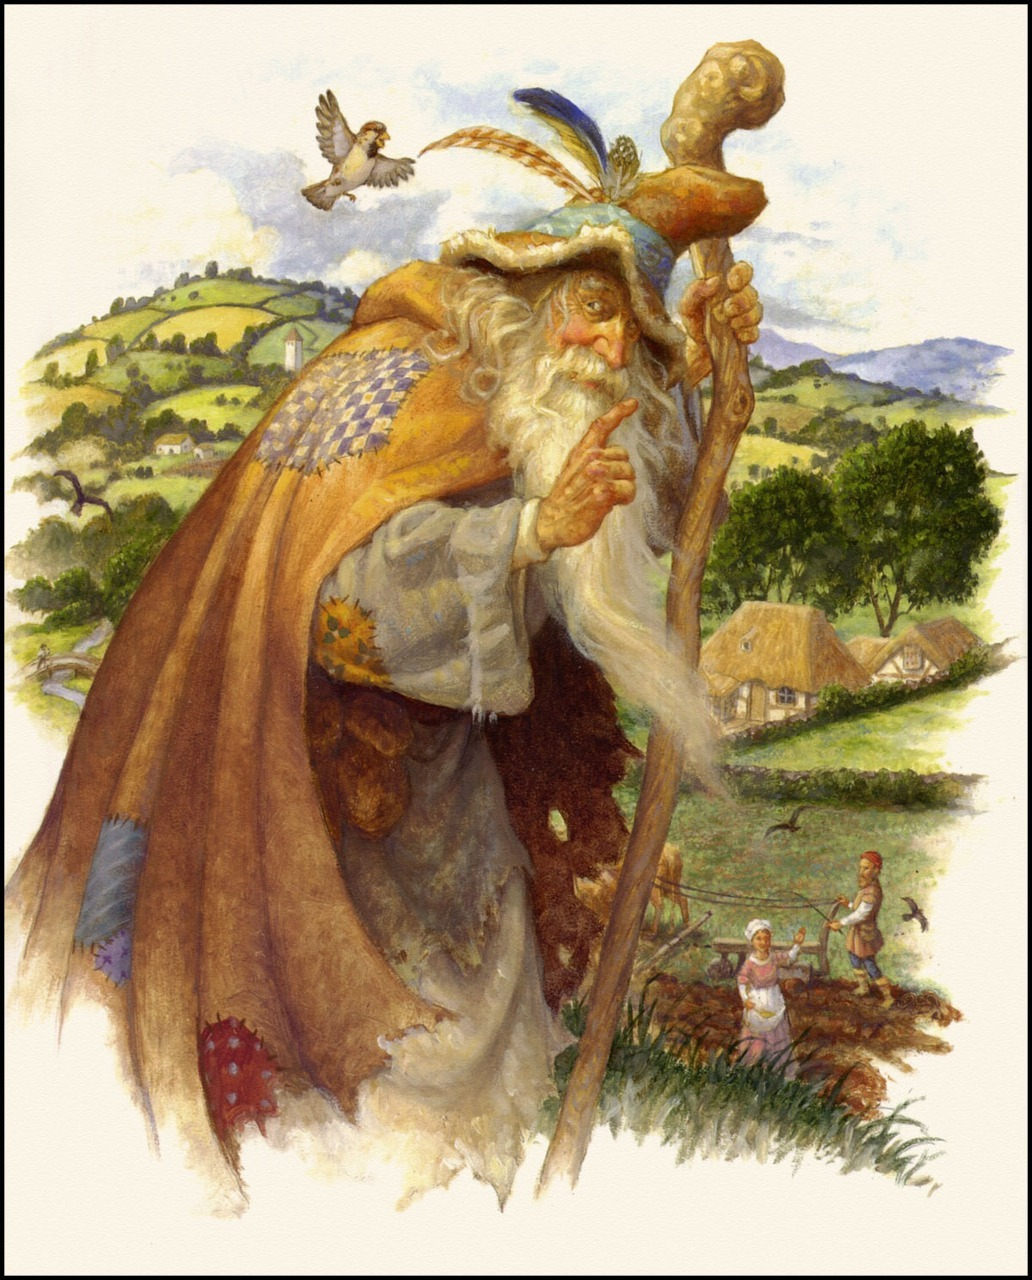 Scott Gustafson ~ Merlin the Wizard visits a Farmer and his Wife ~ from Tom Thumb in Classic Fairy Tales ~ via The Pictorial Arts Artwork © 2009, Scott Gustafson.